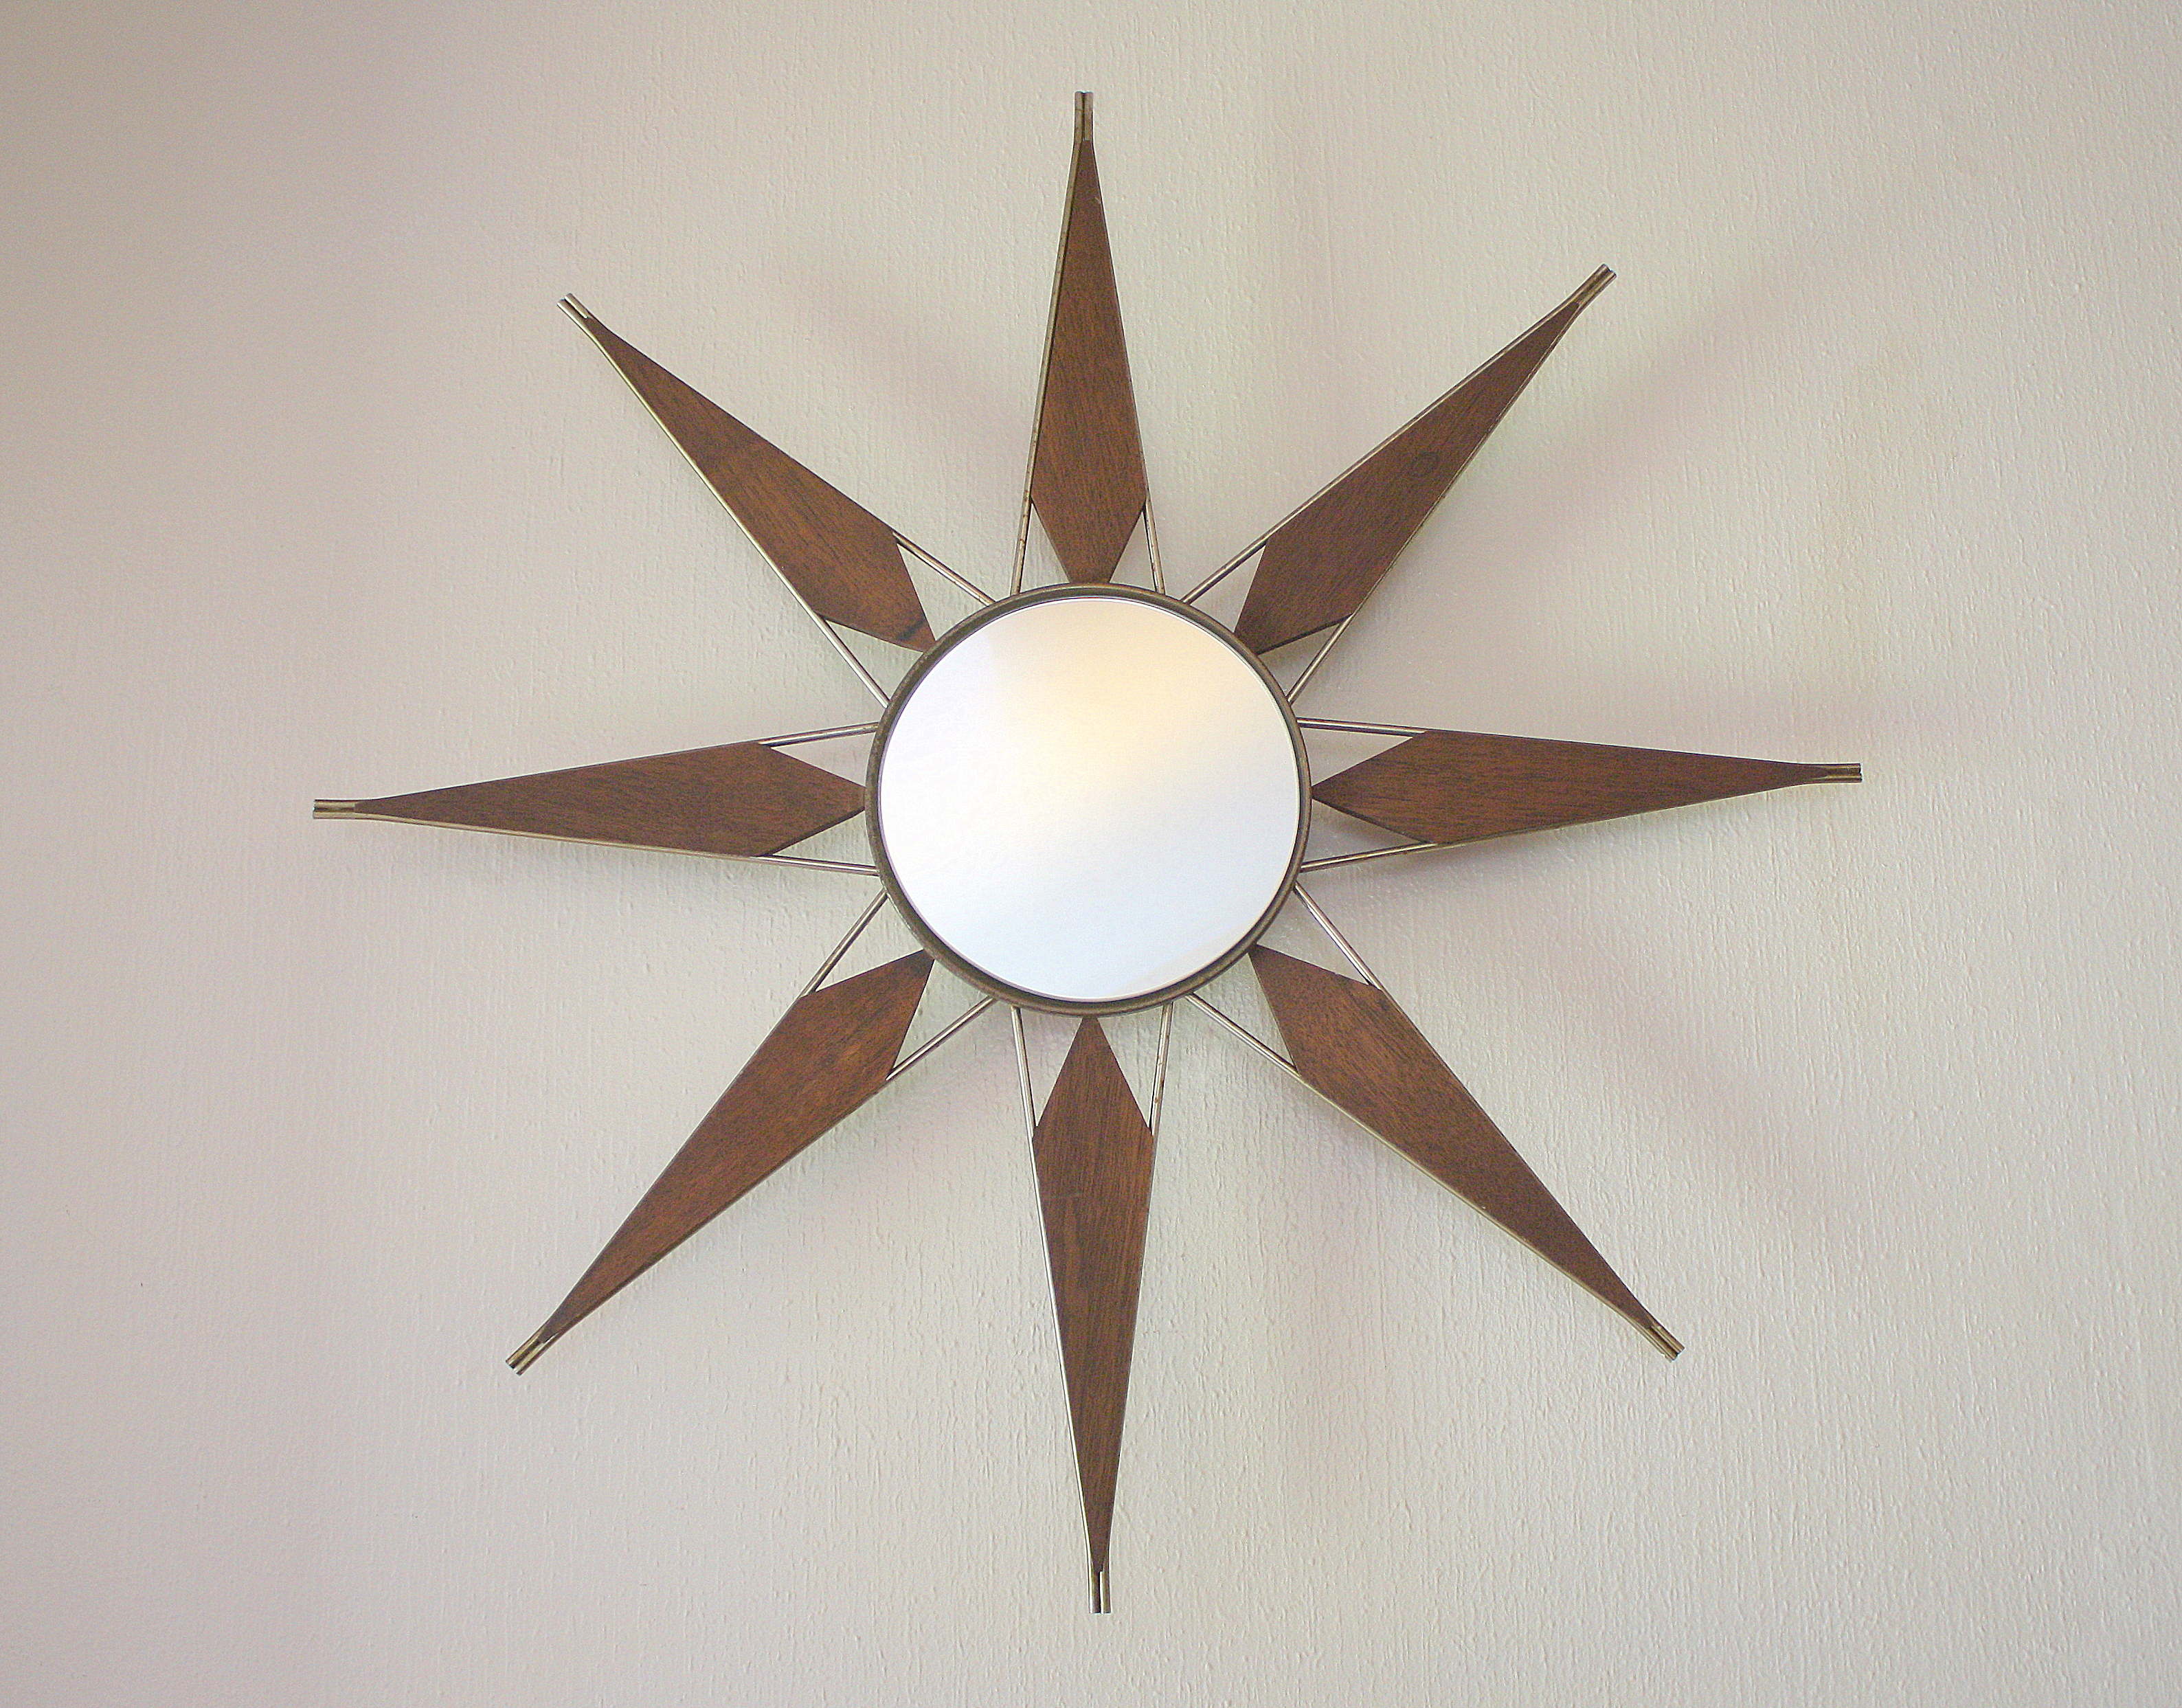 Mid Century Modern Sunburst Mirror Picked Vintage : mcm starburst mirror 1 from pickedvintage.com size 3176 x 2486 jpeg 6012kB